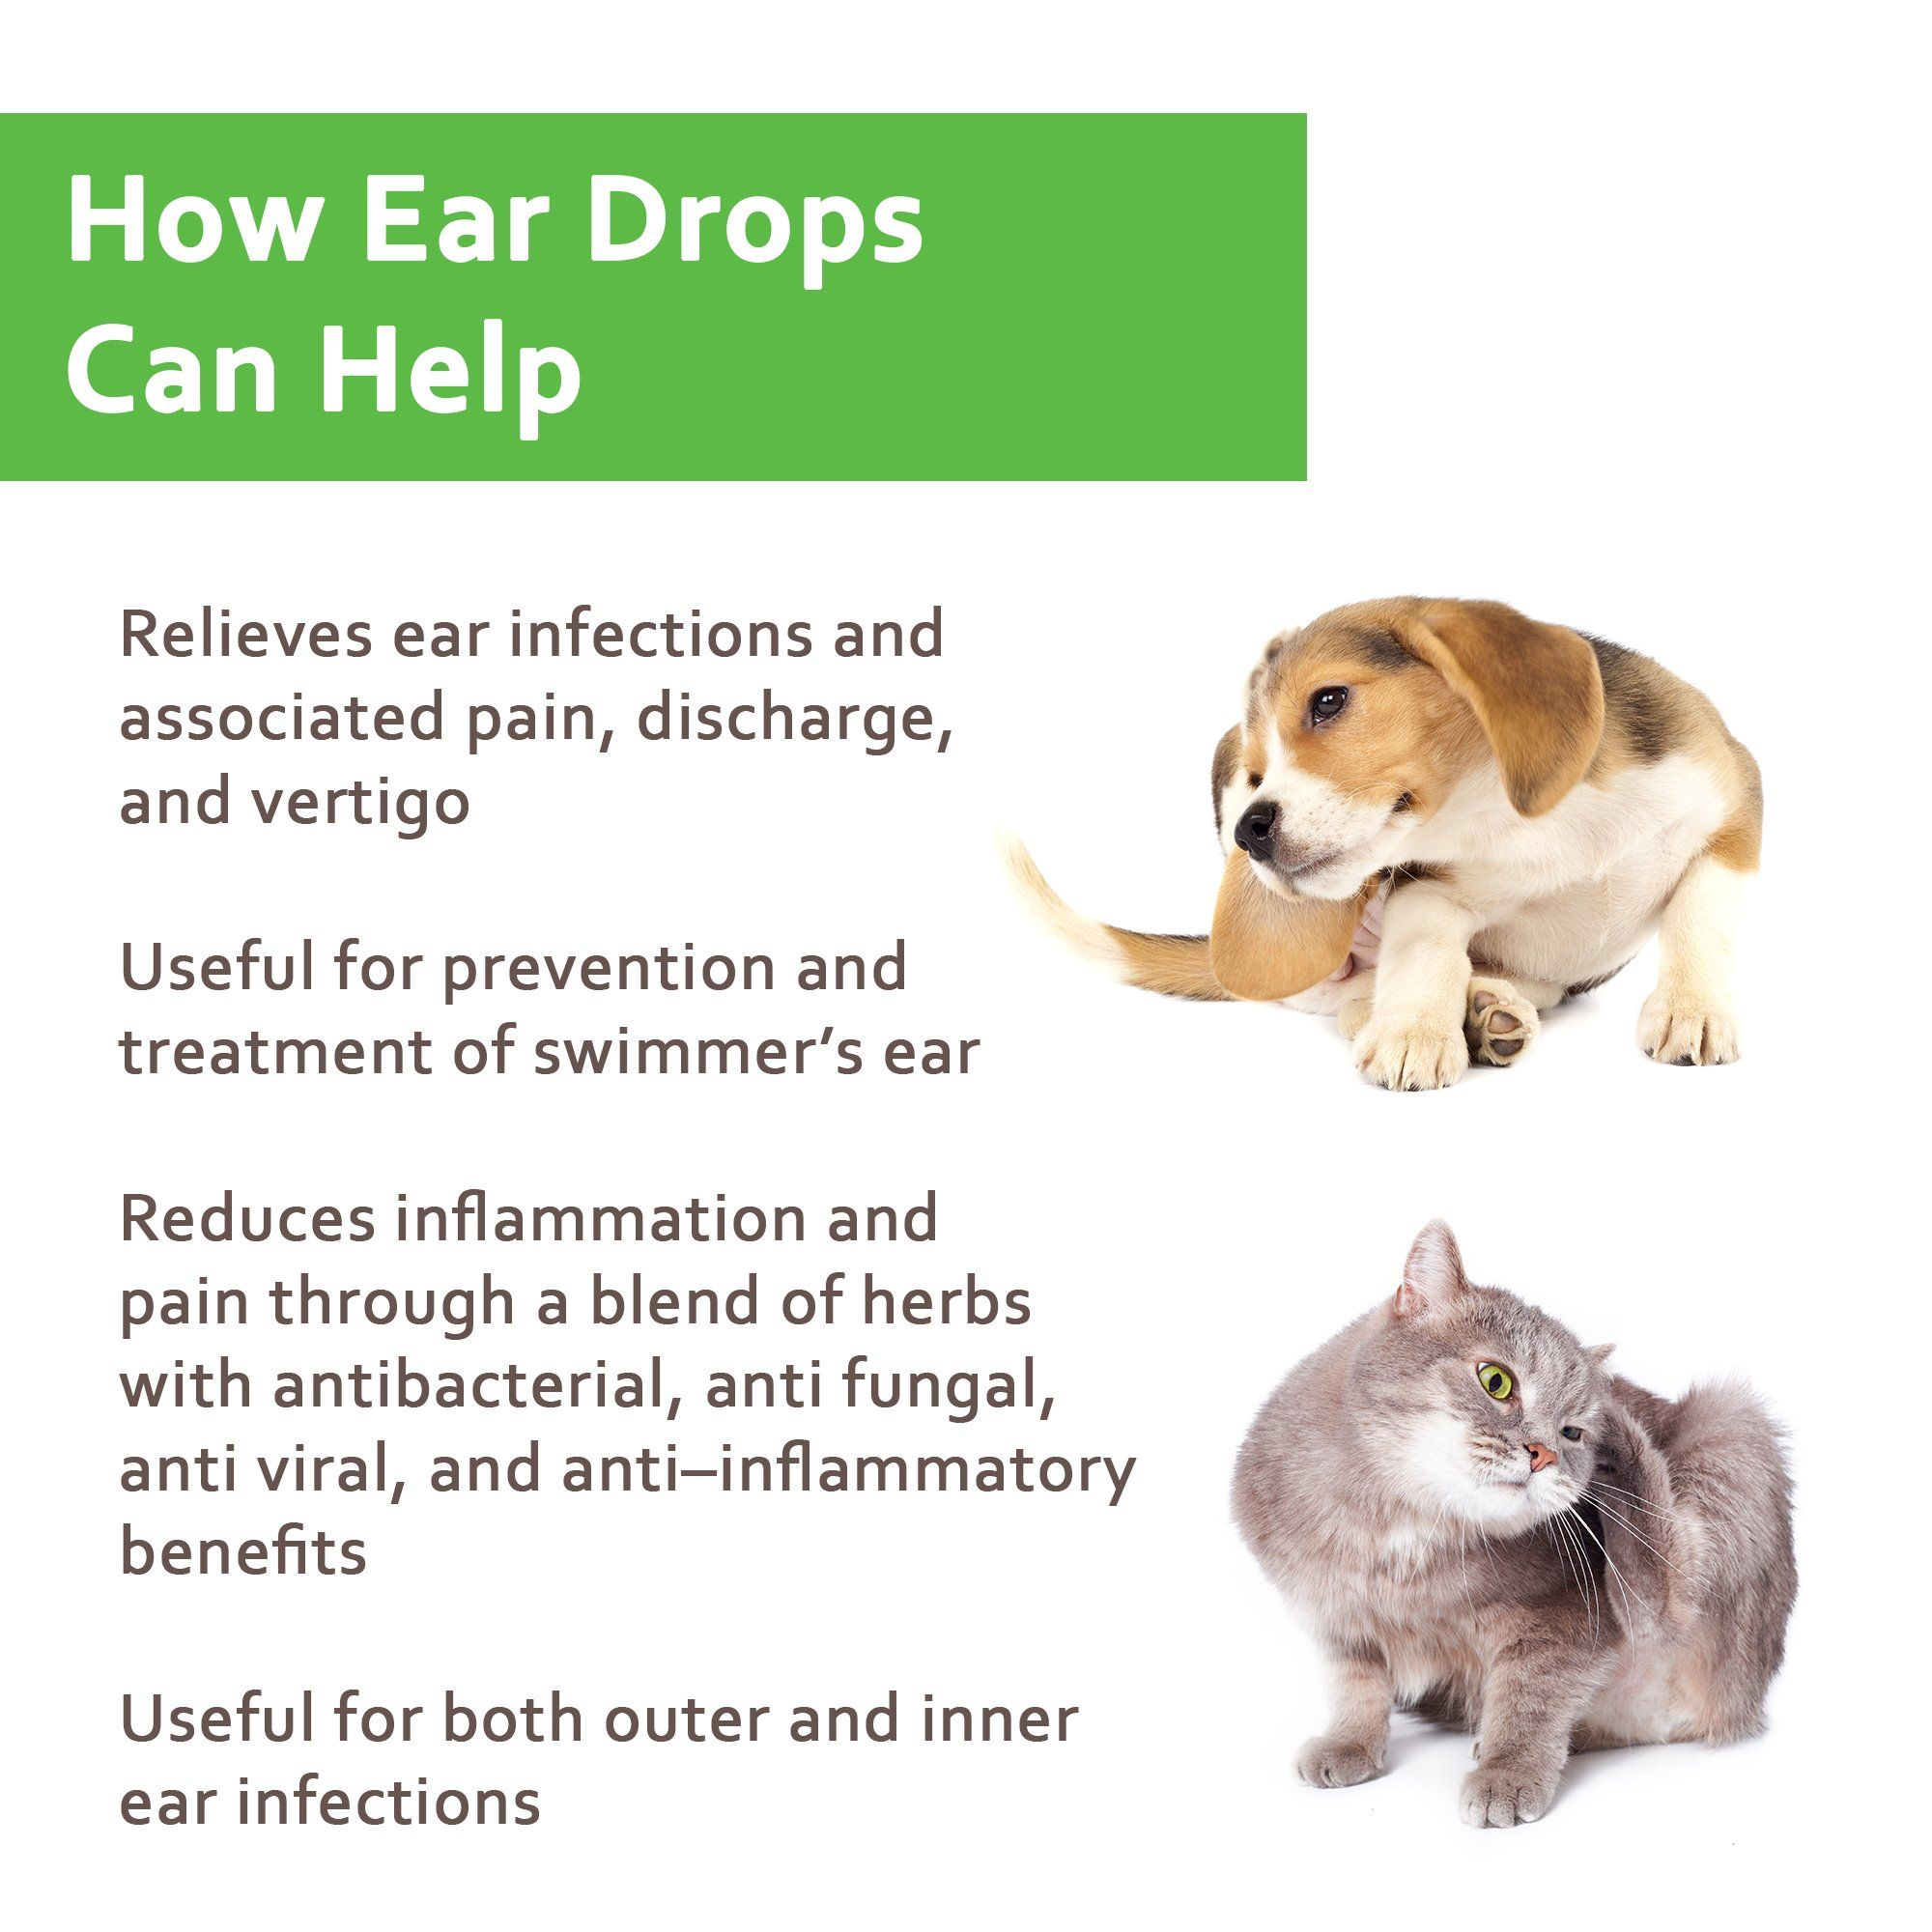 Naturpet Ear Drops Natural Ear Infection Medicine For Dogs Ear Mites Cats Dog Ear Cleaner Cat Ear Cleaner Helps Ear Drops For Dogs Dog Ear Mites Ear Drops